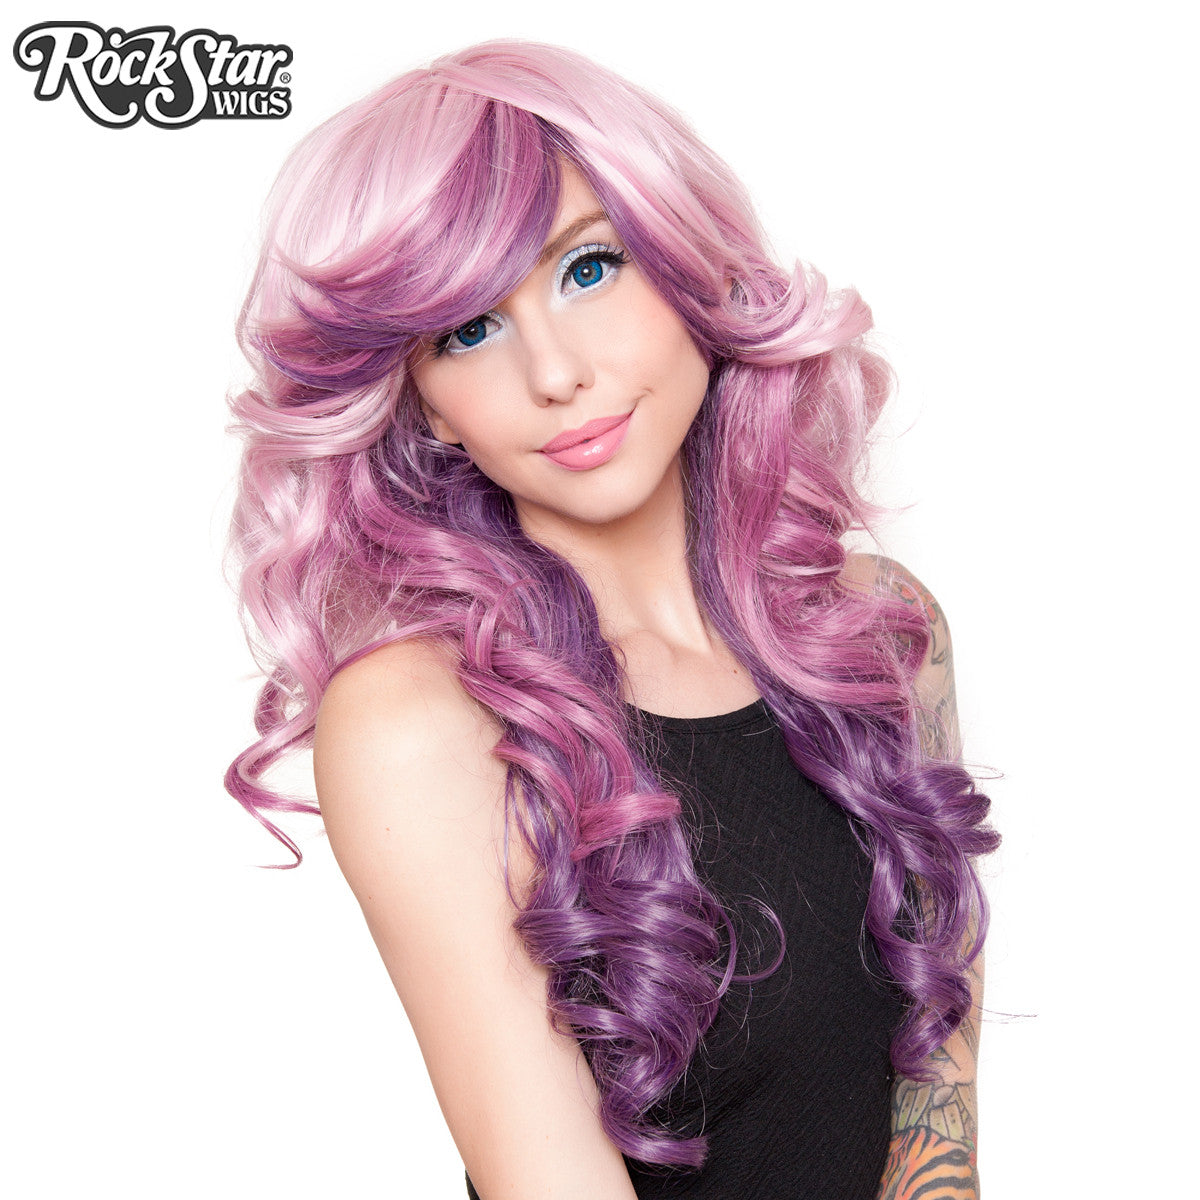 RockStar Wigs® <br> Triflect™ Collection - Berrylicious -00834